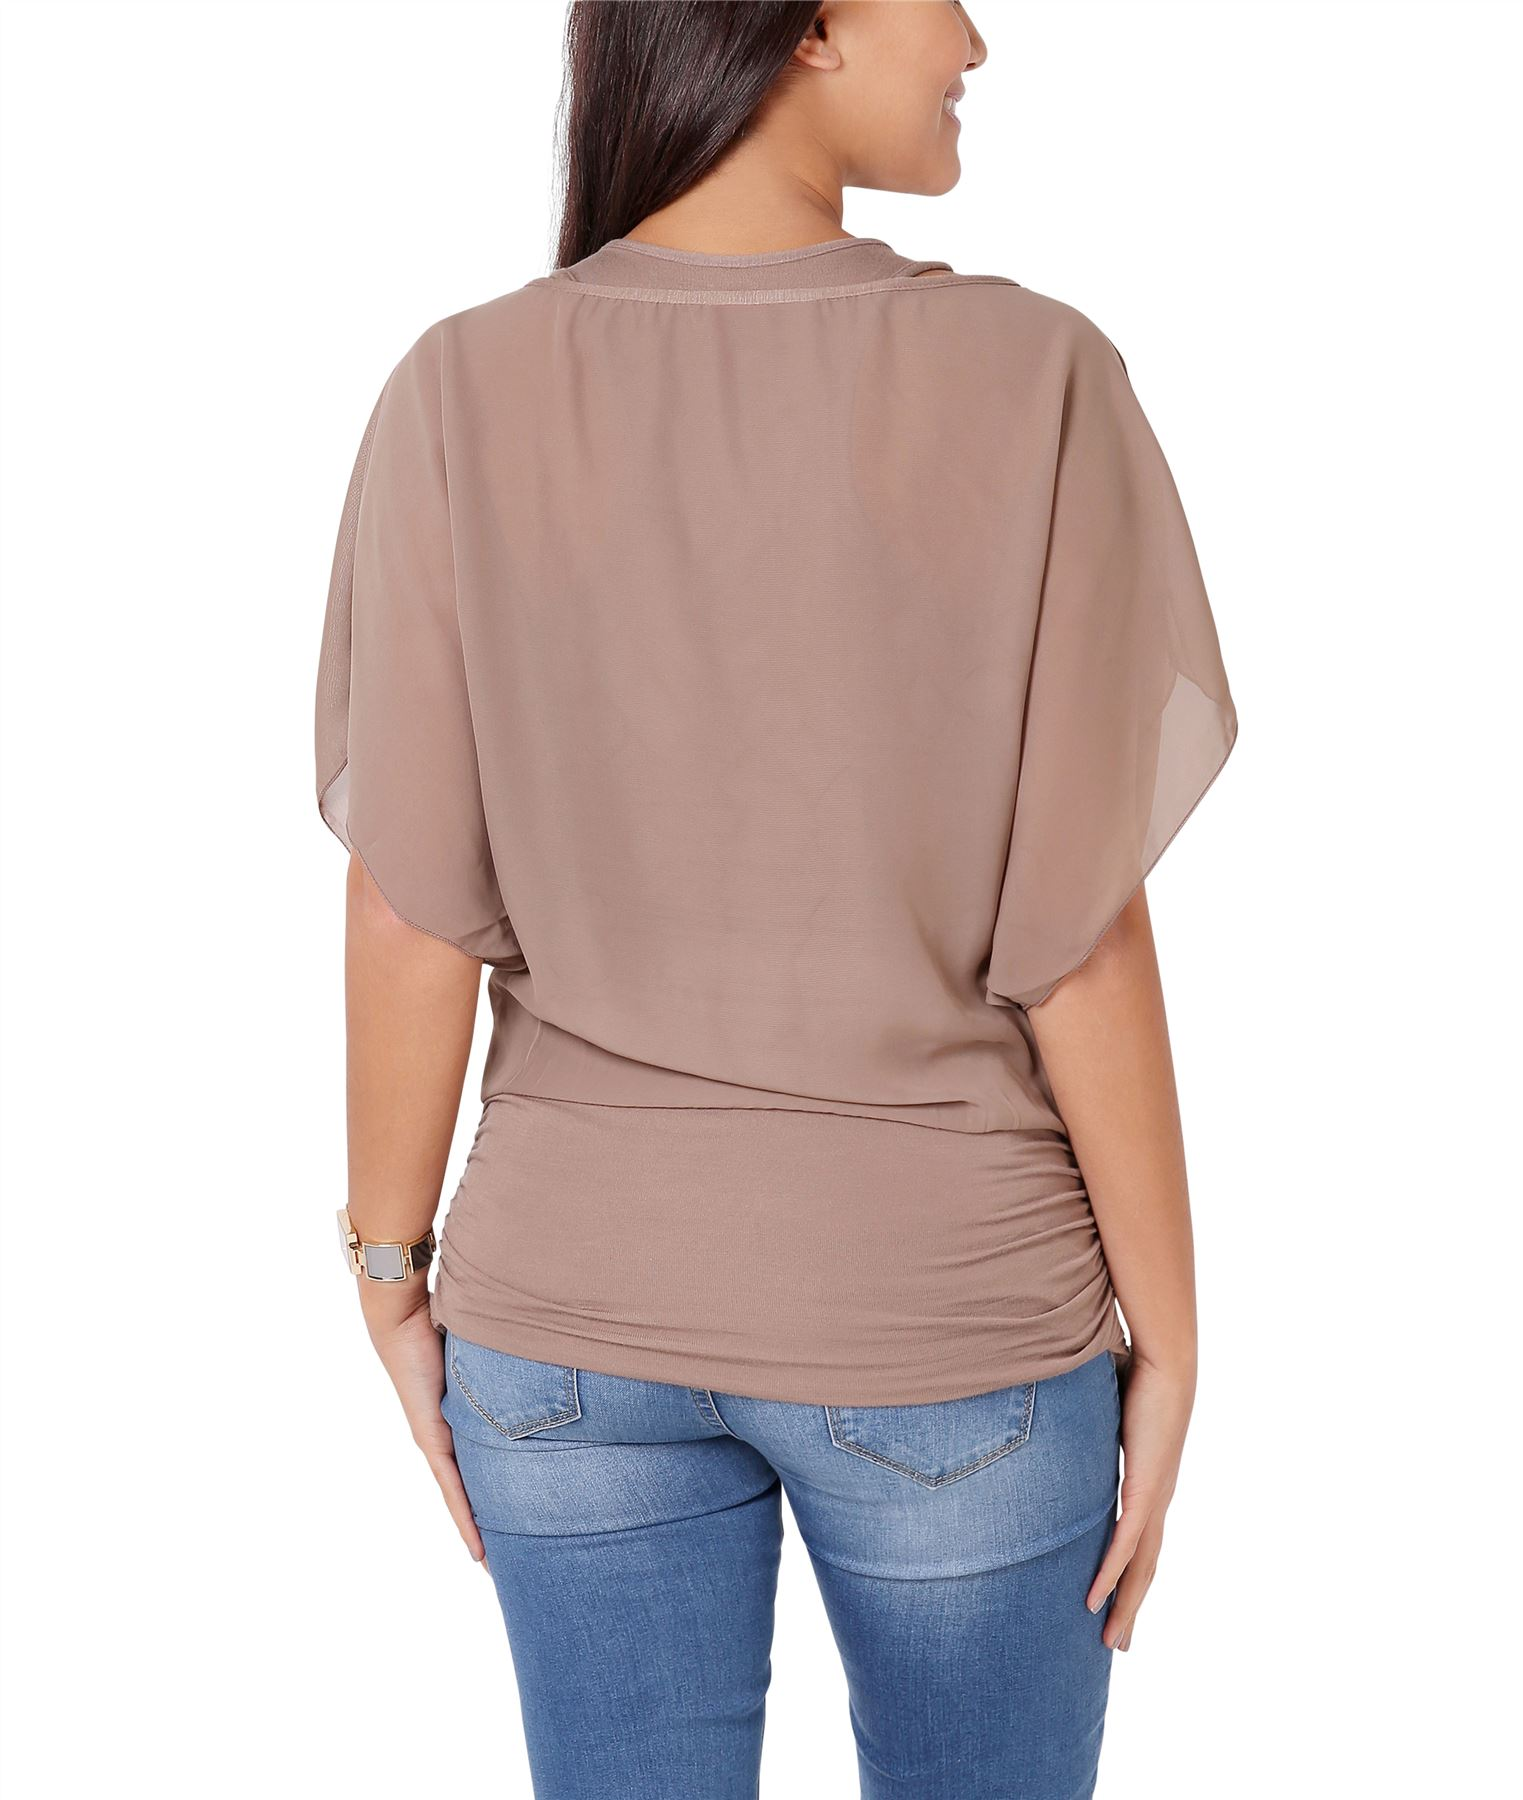 Womens-Scoop-Neck-Blouse-Baggy-Batwing-T-Shirt-Top-Ladies-Oversized-Chiffon-2in1 thumbnail 18